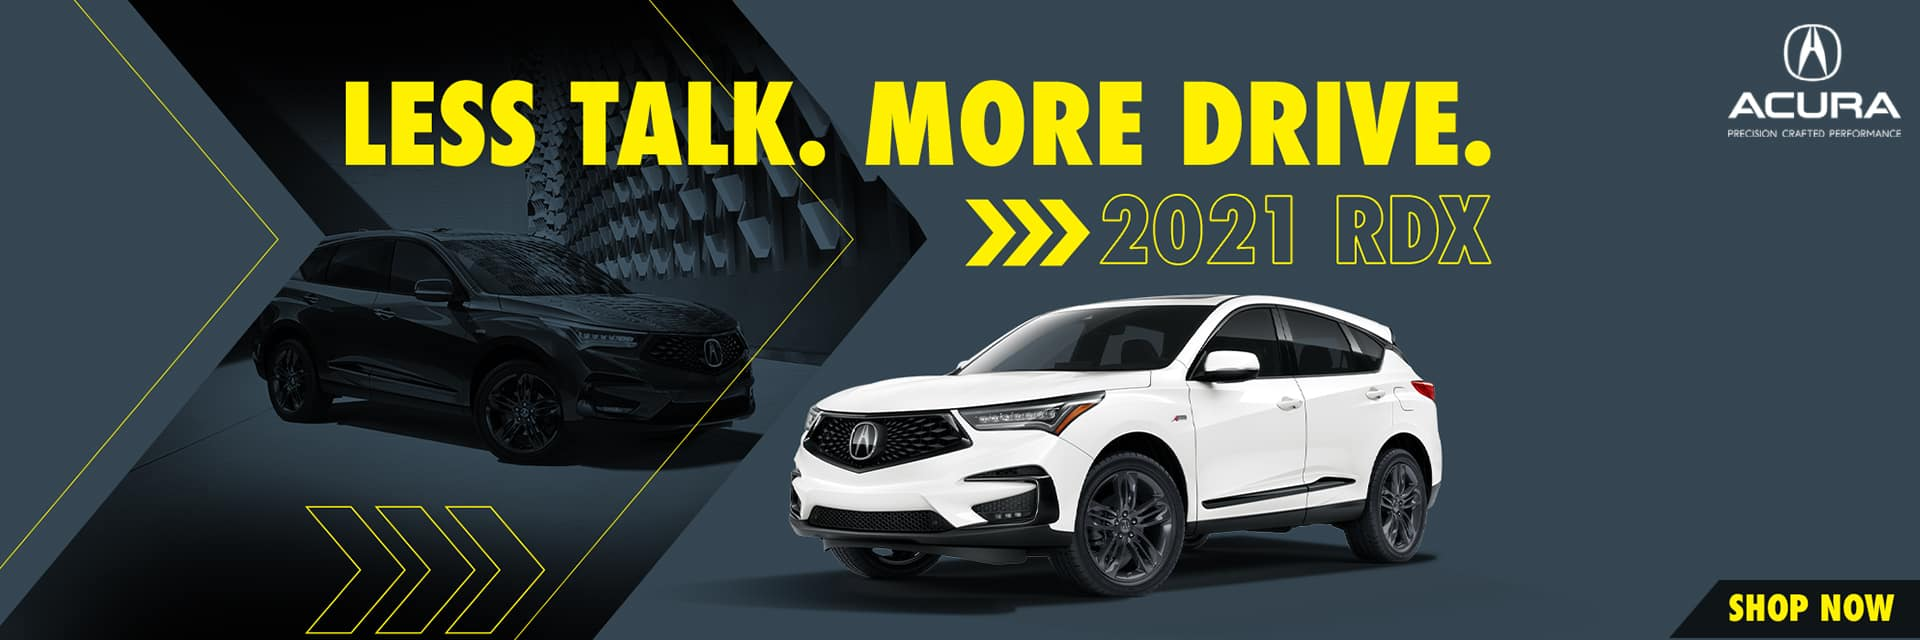 1920x640_CA_21013_Acura Spring into Performance_Non-Offer DAA_CTROT 2021 RDX